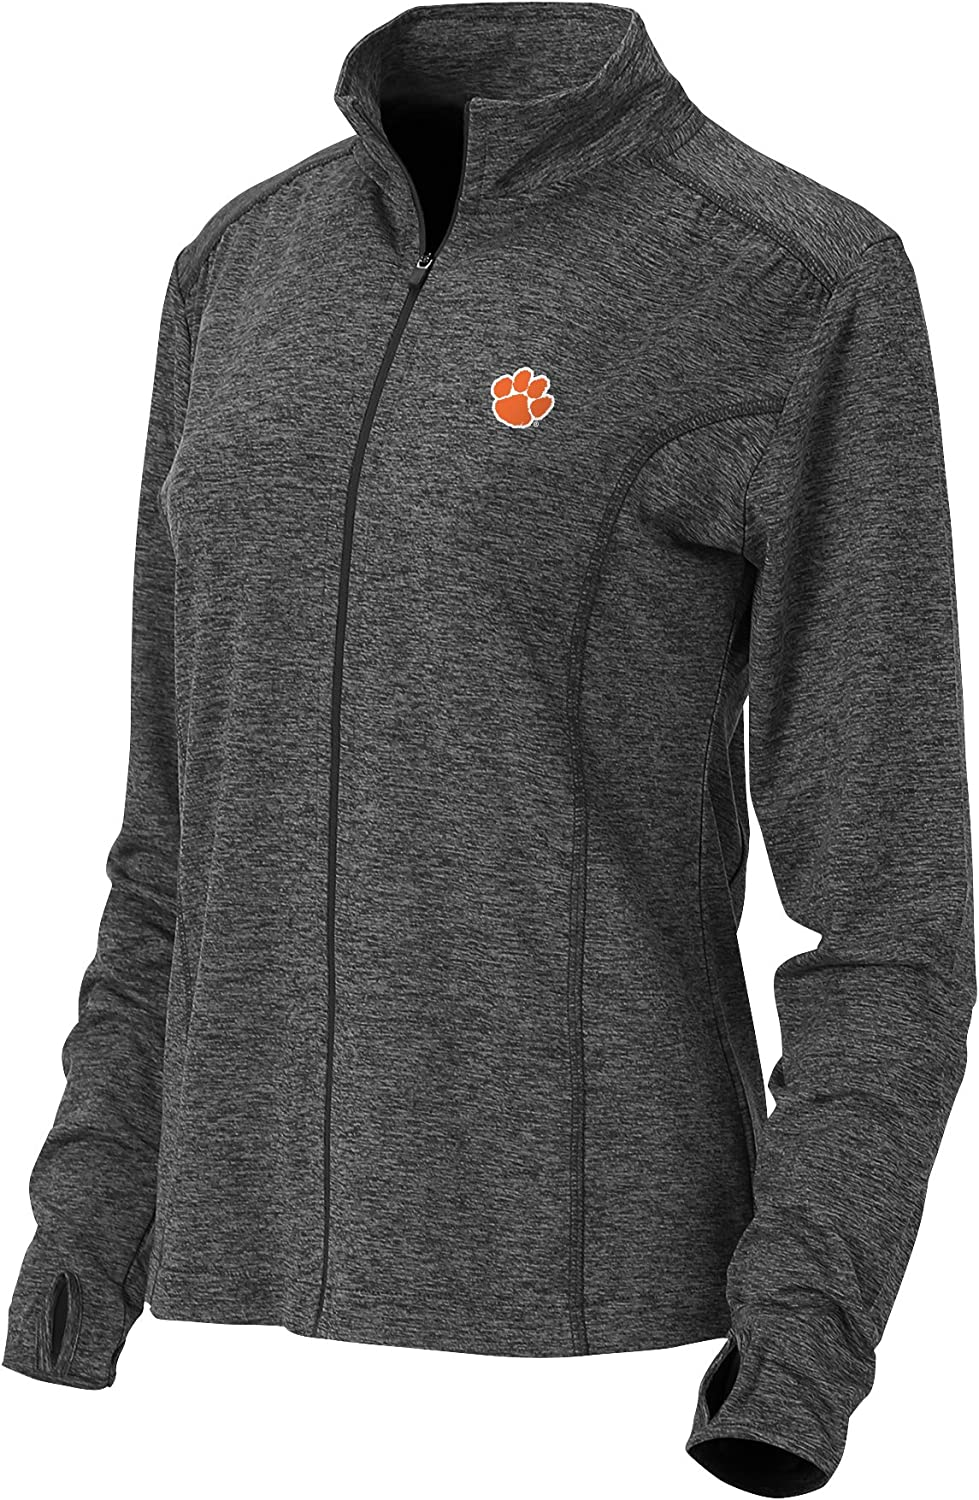 Limited time trial price NCAA Womens Swerve Selling Jacket Full Zip